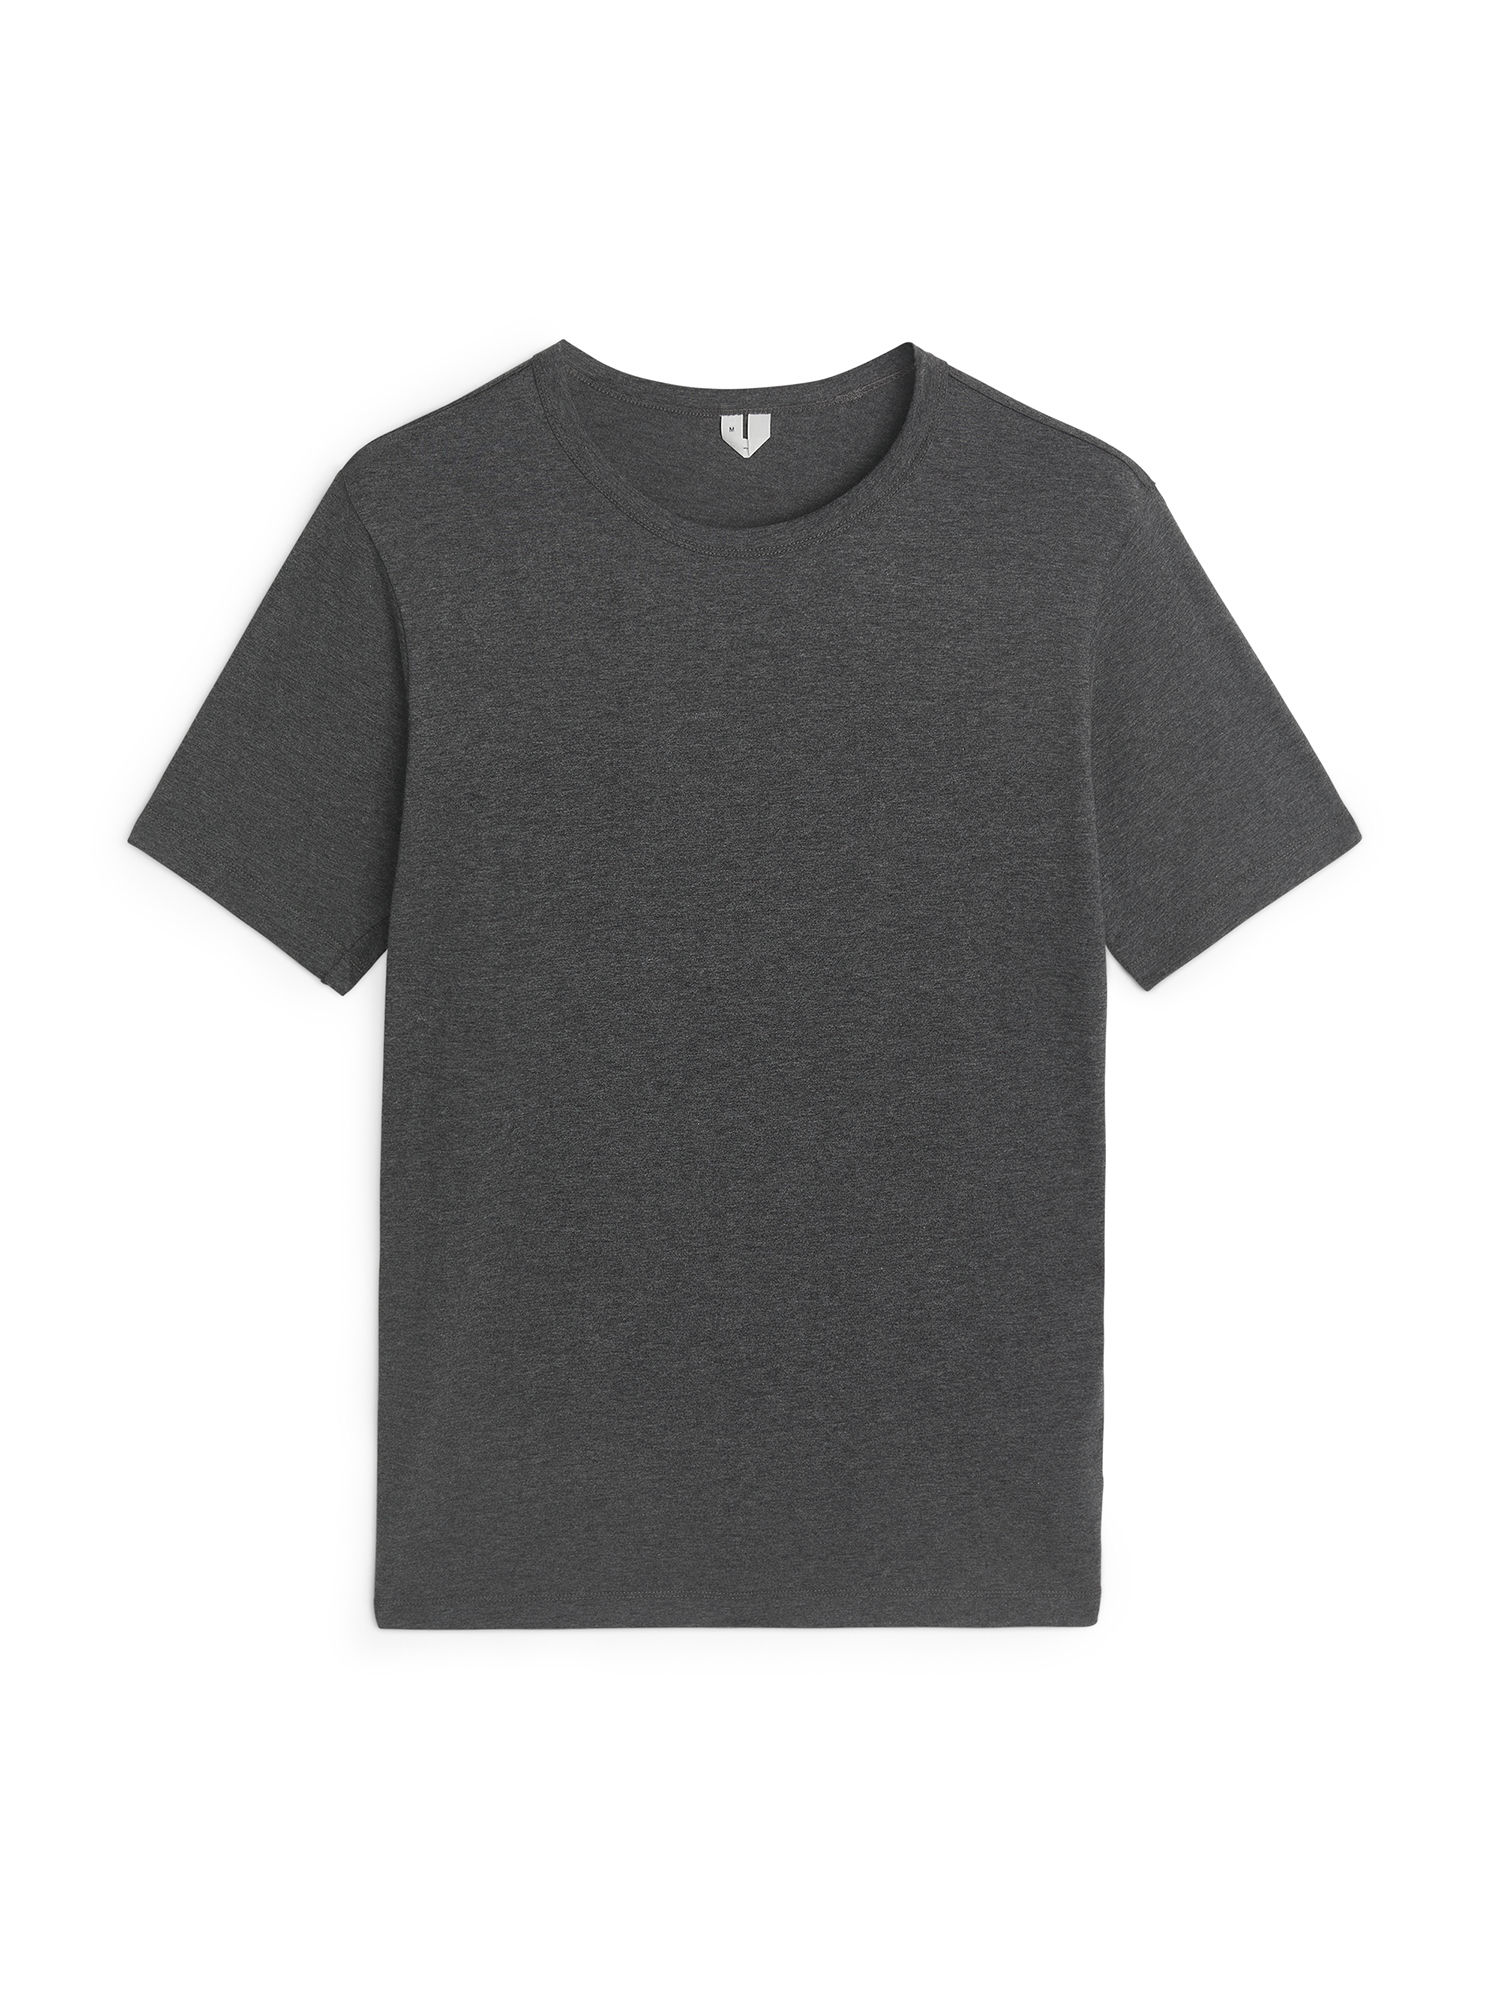 Fabric Swatch image of Arket 150 gsm pima cotton t-shirt in grey